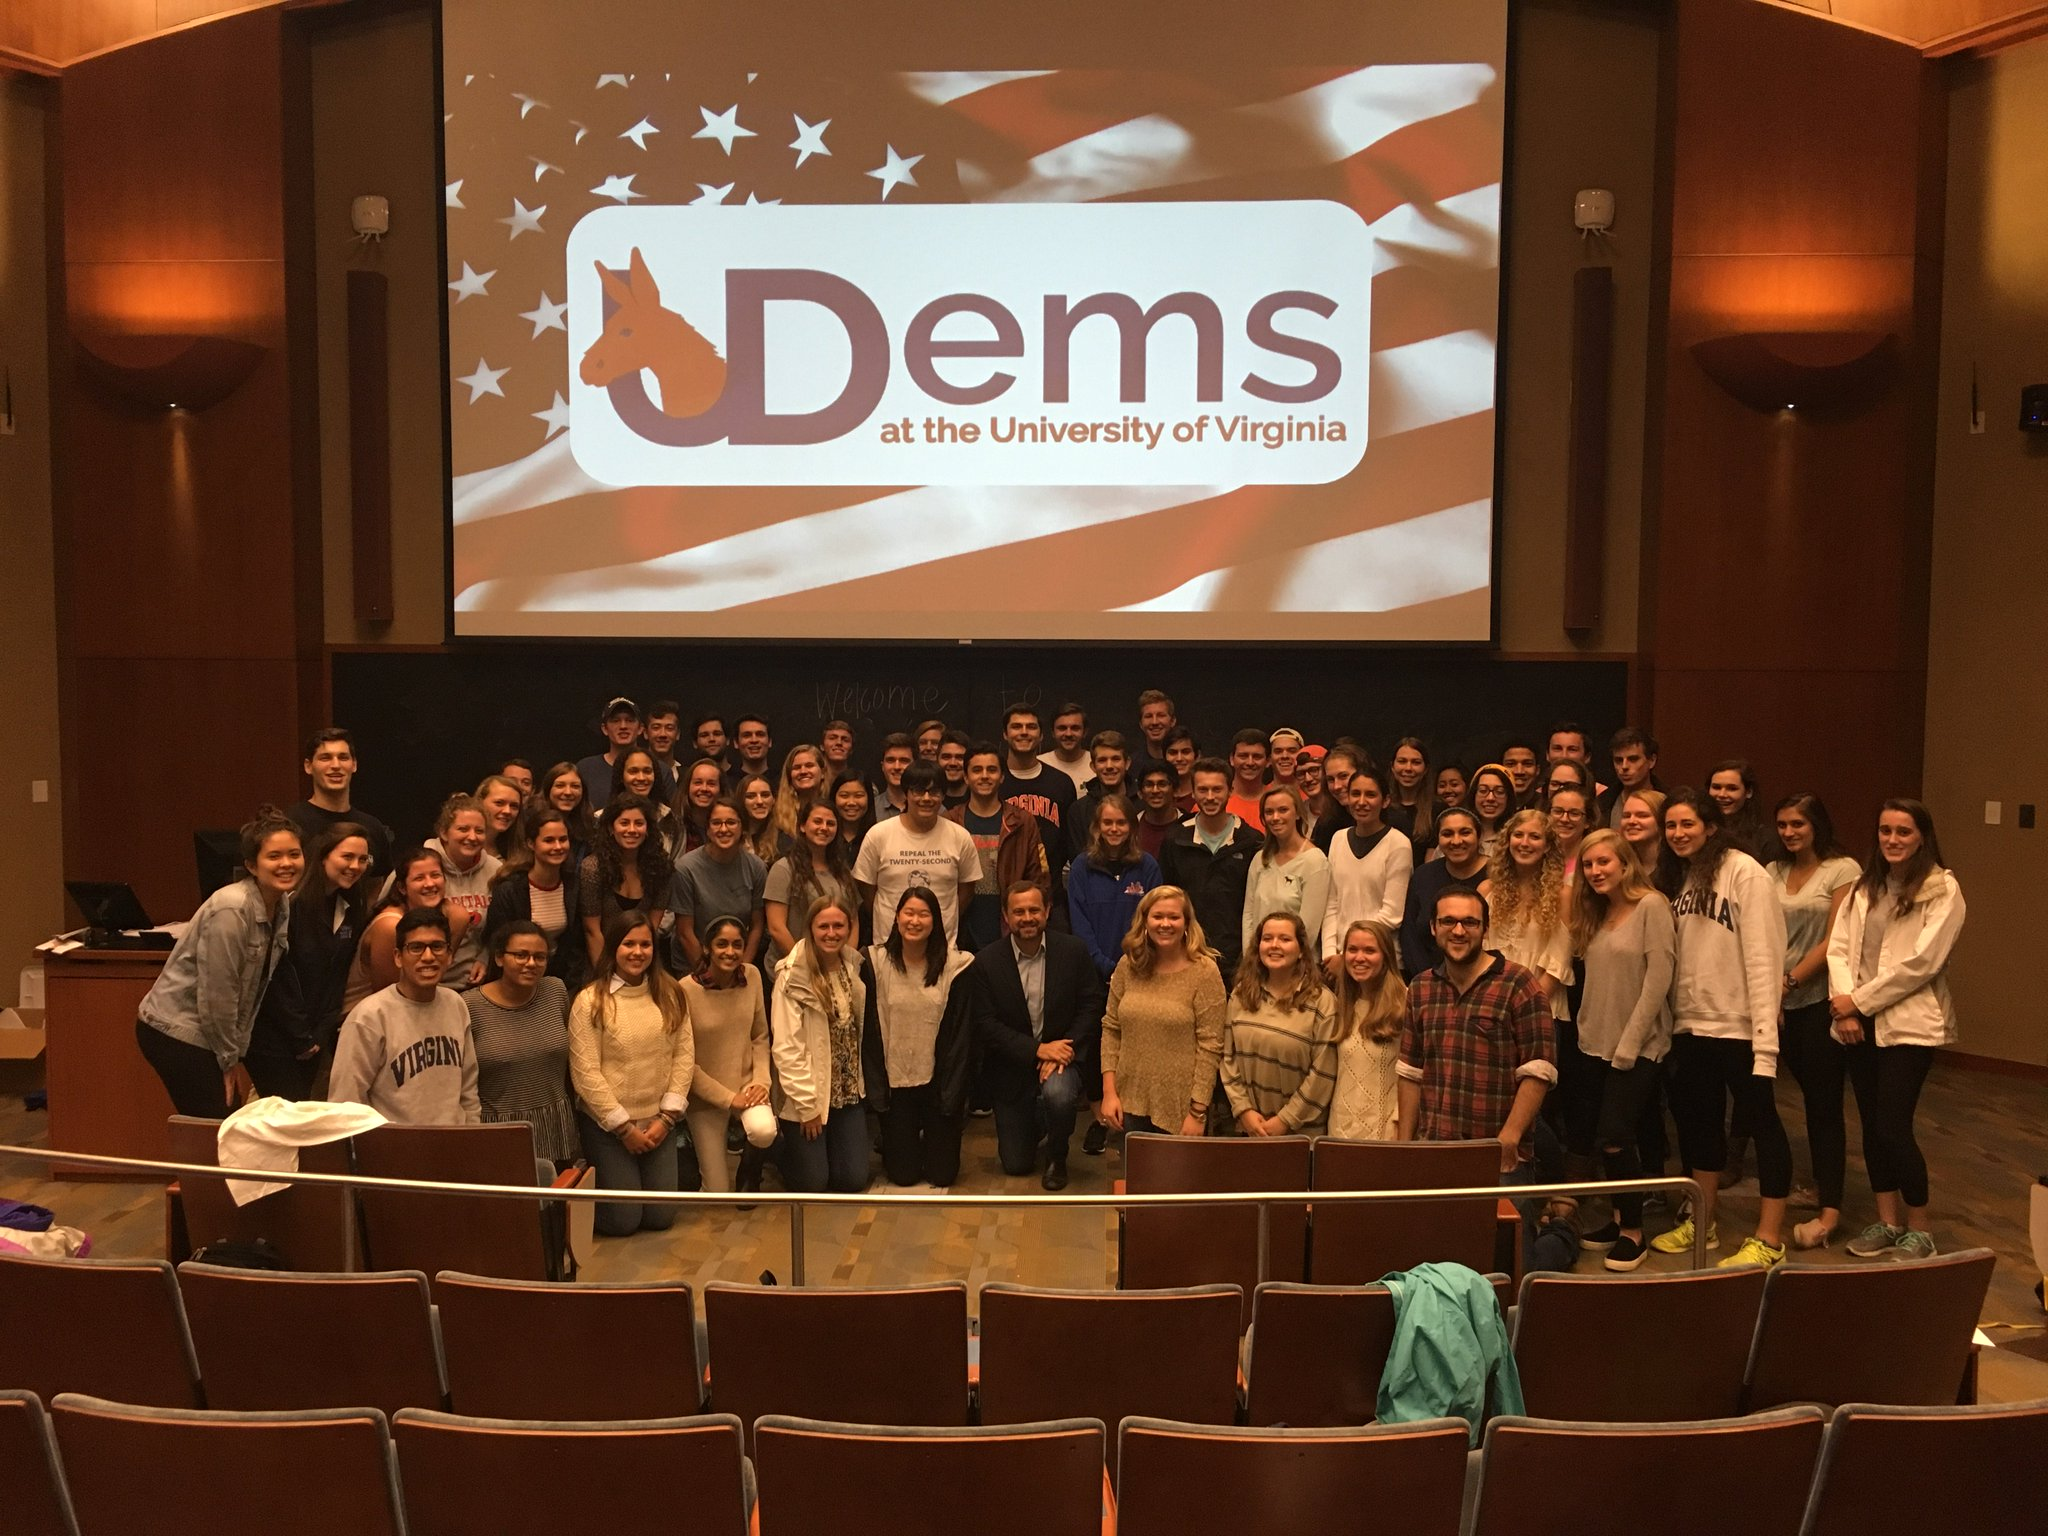 Great evening with @DemsatUVA! Our party's future (and present) is strong thanks to these activists. https://t.co/A2ldJKrqMc